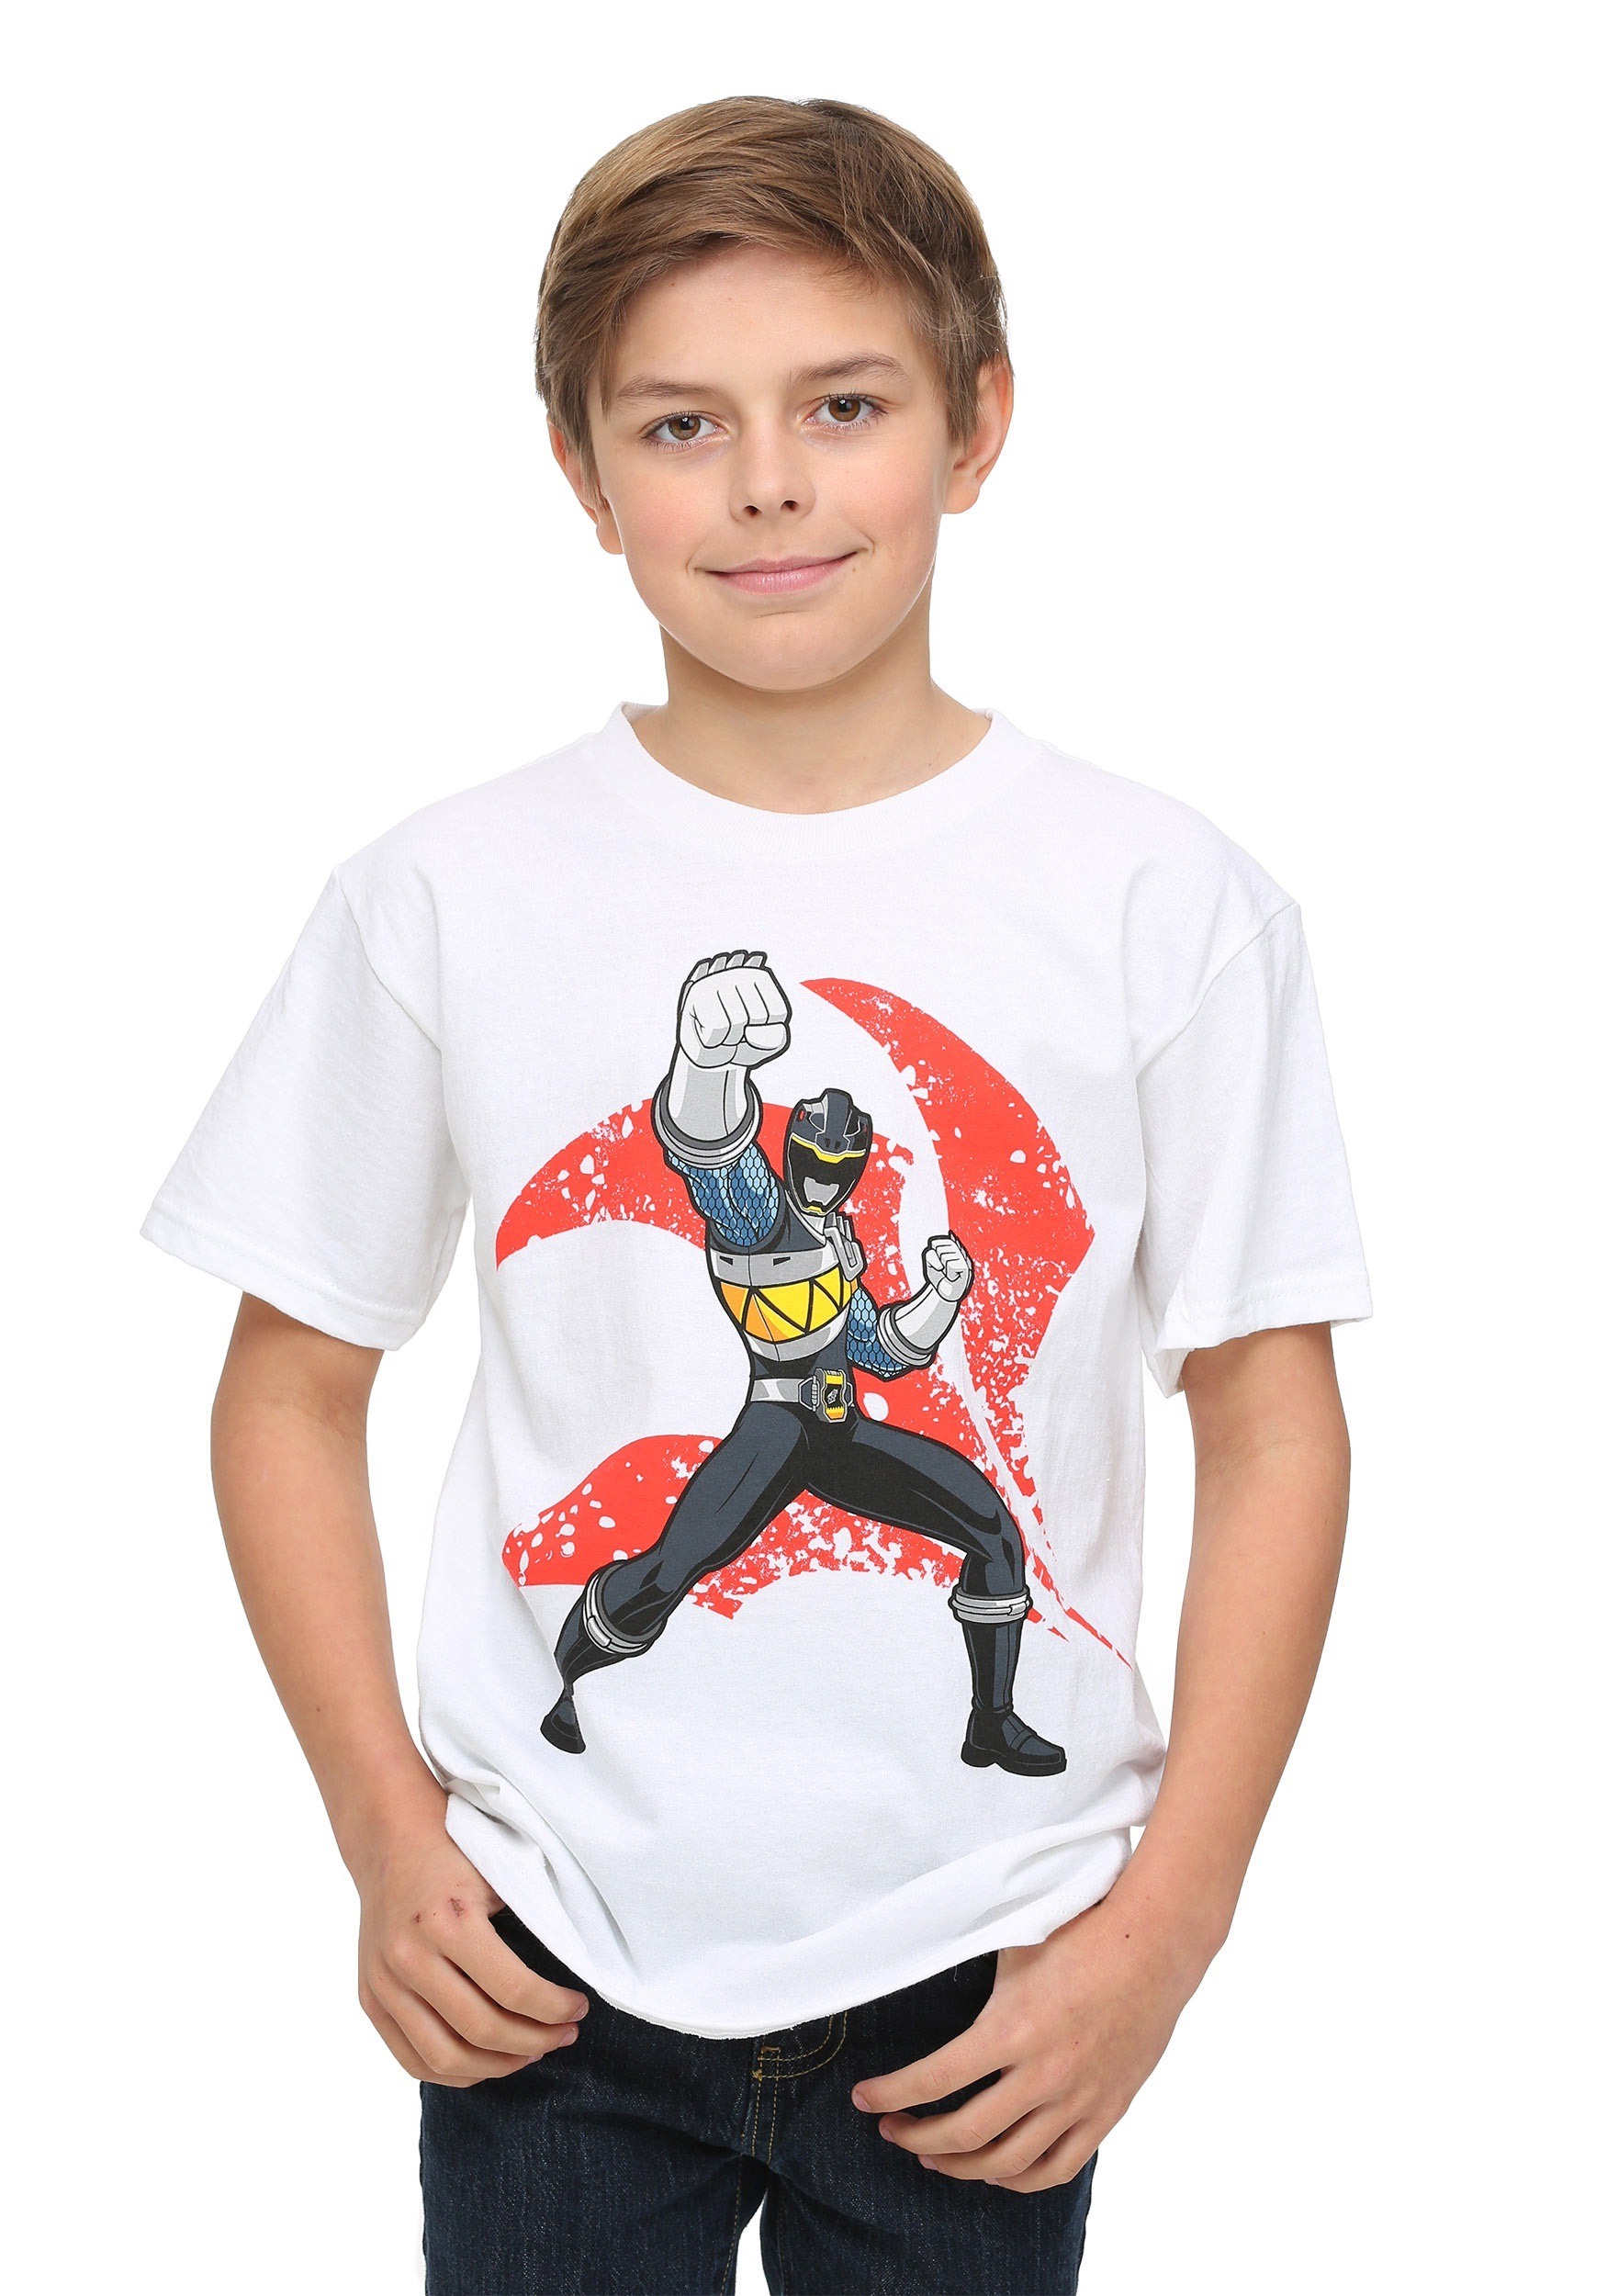 Transformation 20into 20a 20v ire likewise Electrotr likewise Halloween Red Devil Fancy Dress Costume likewise Product info furthermore Power Rangers Black Ranger Punch Boys T Shirt. on power rangers and teenage mutant ninja turtles